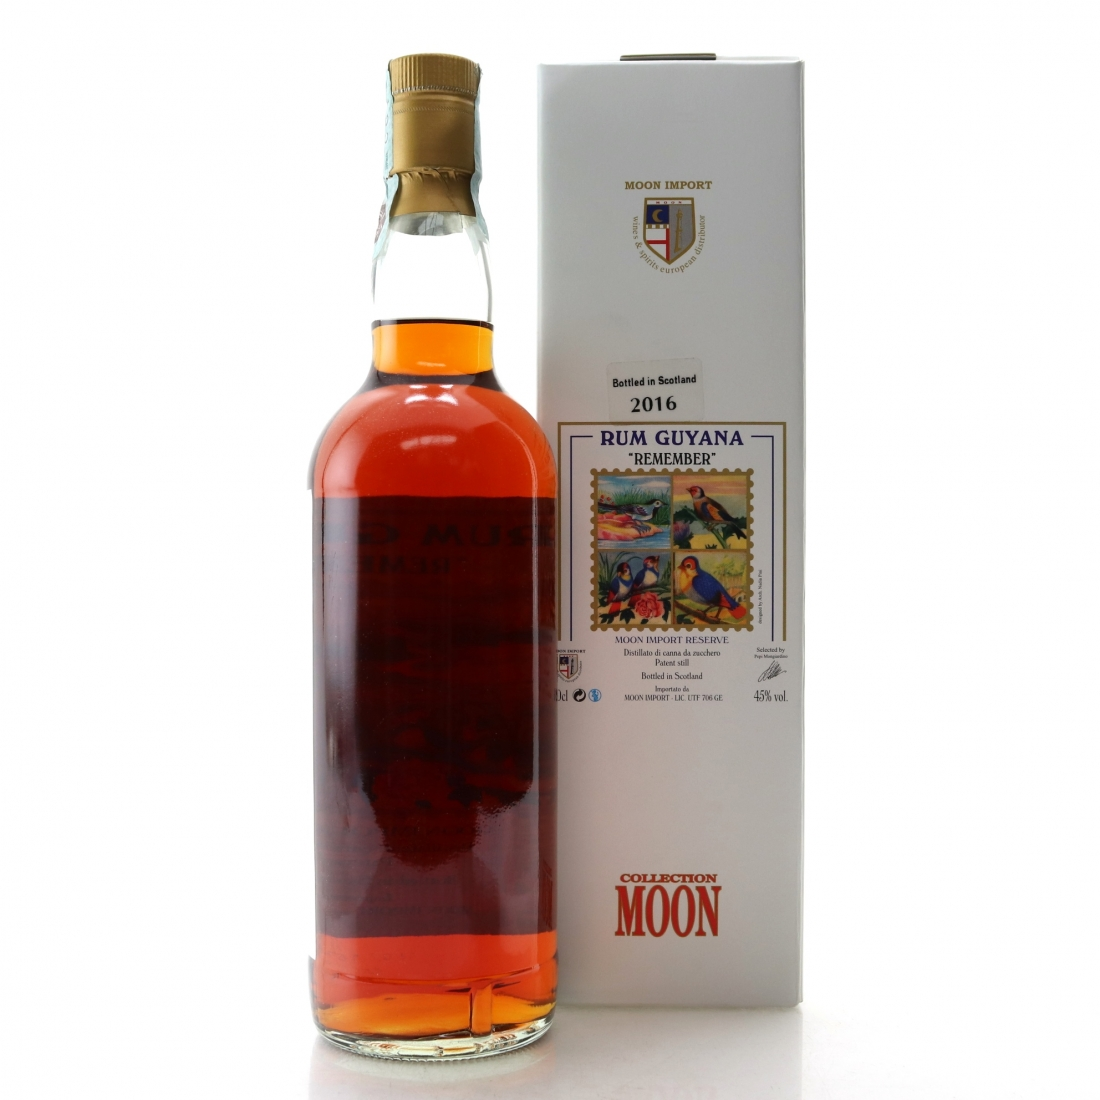 Guyana 'Remember' Moon Import Reserve Rum